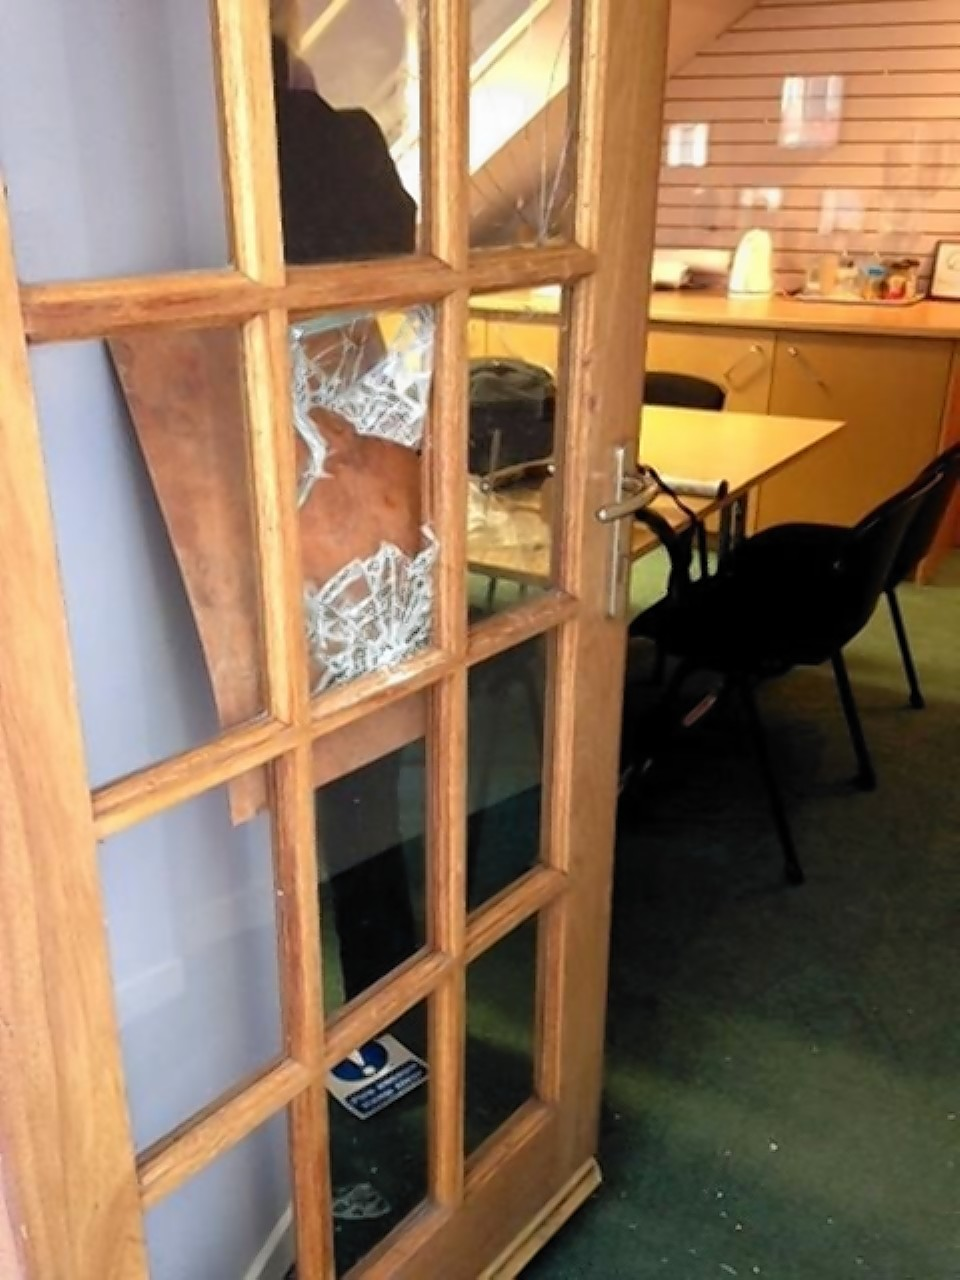 The break-in at Chest Heart and Stroke offices in Inverness